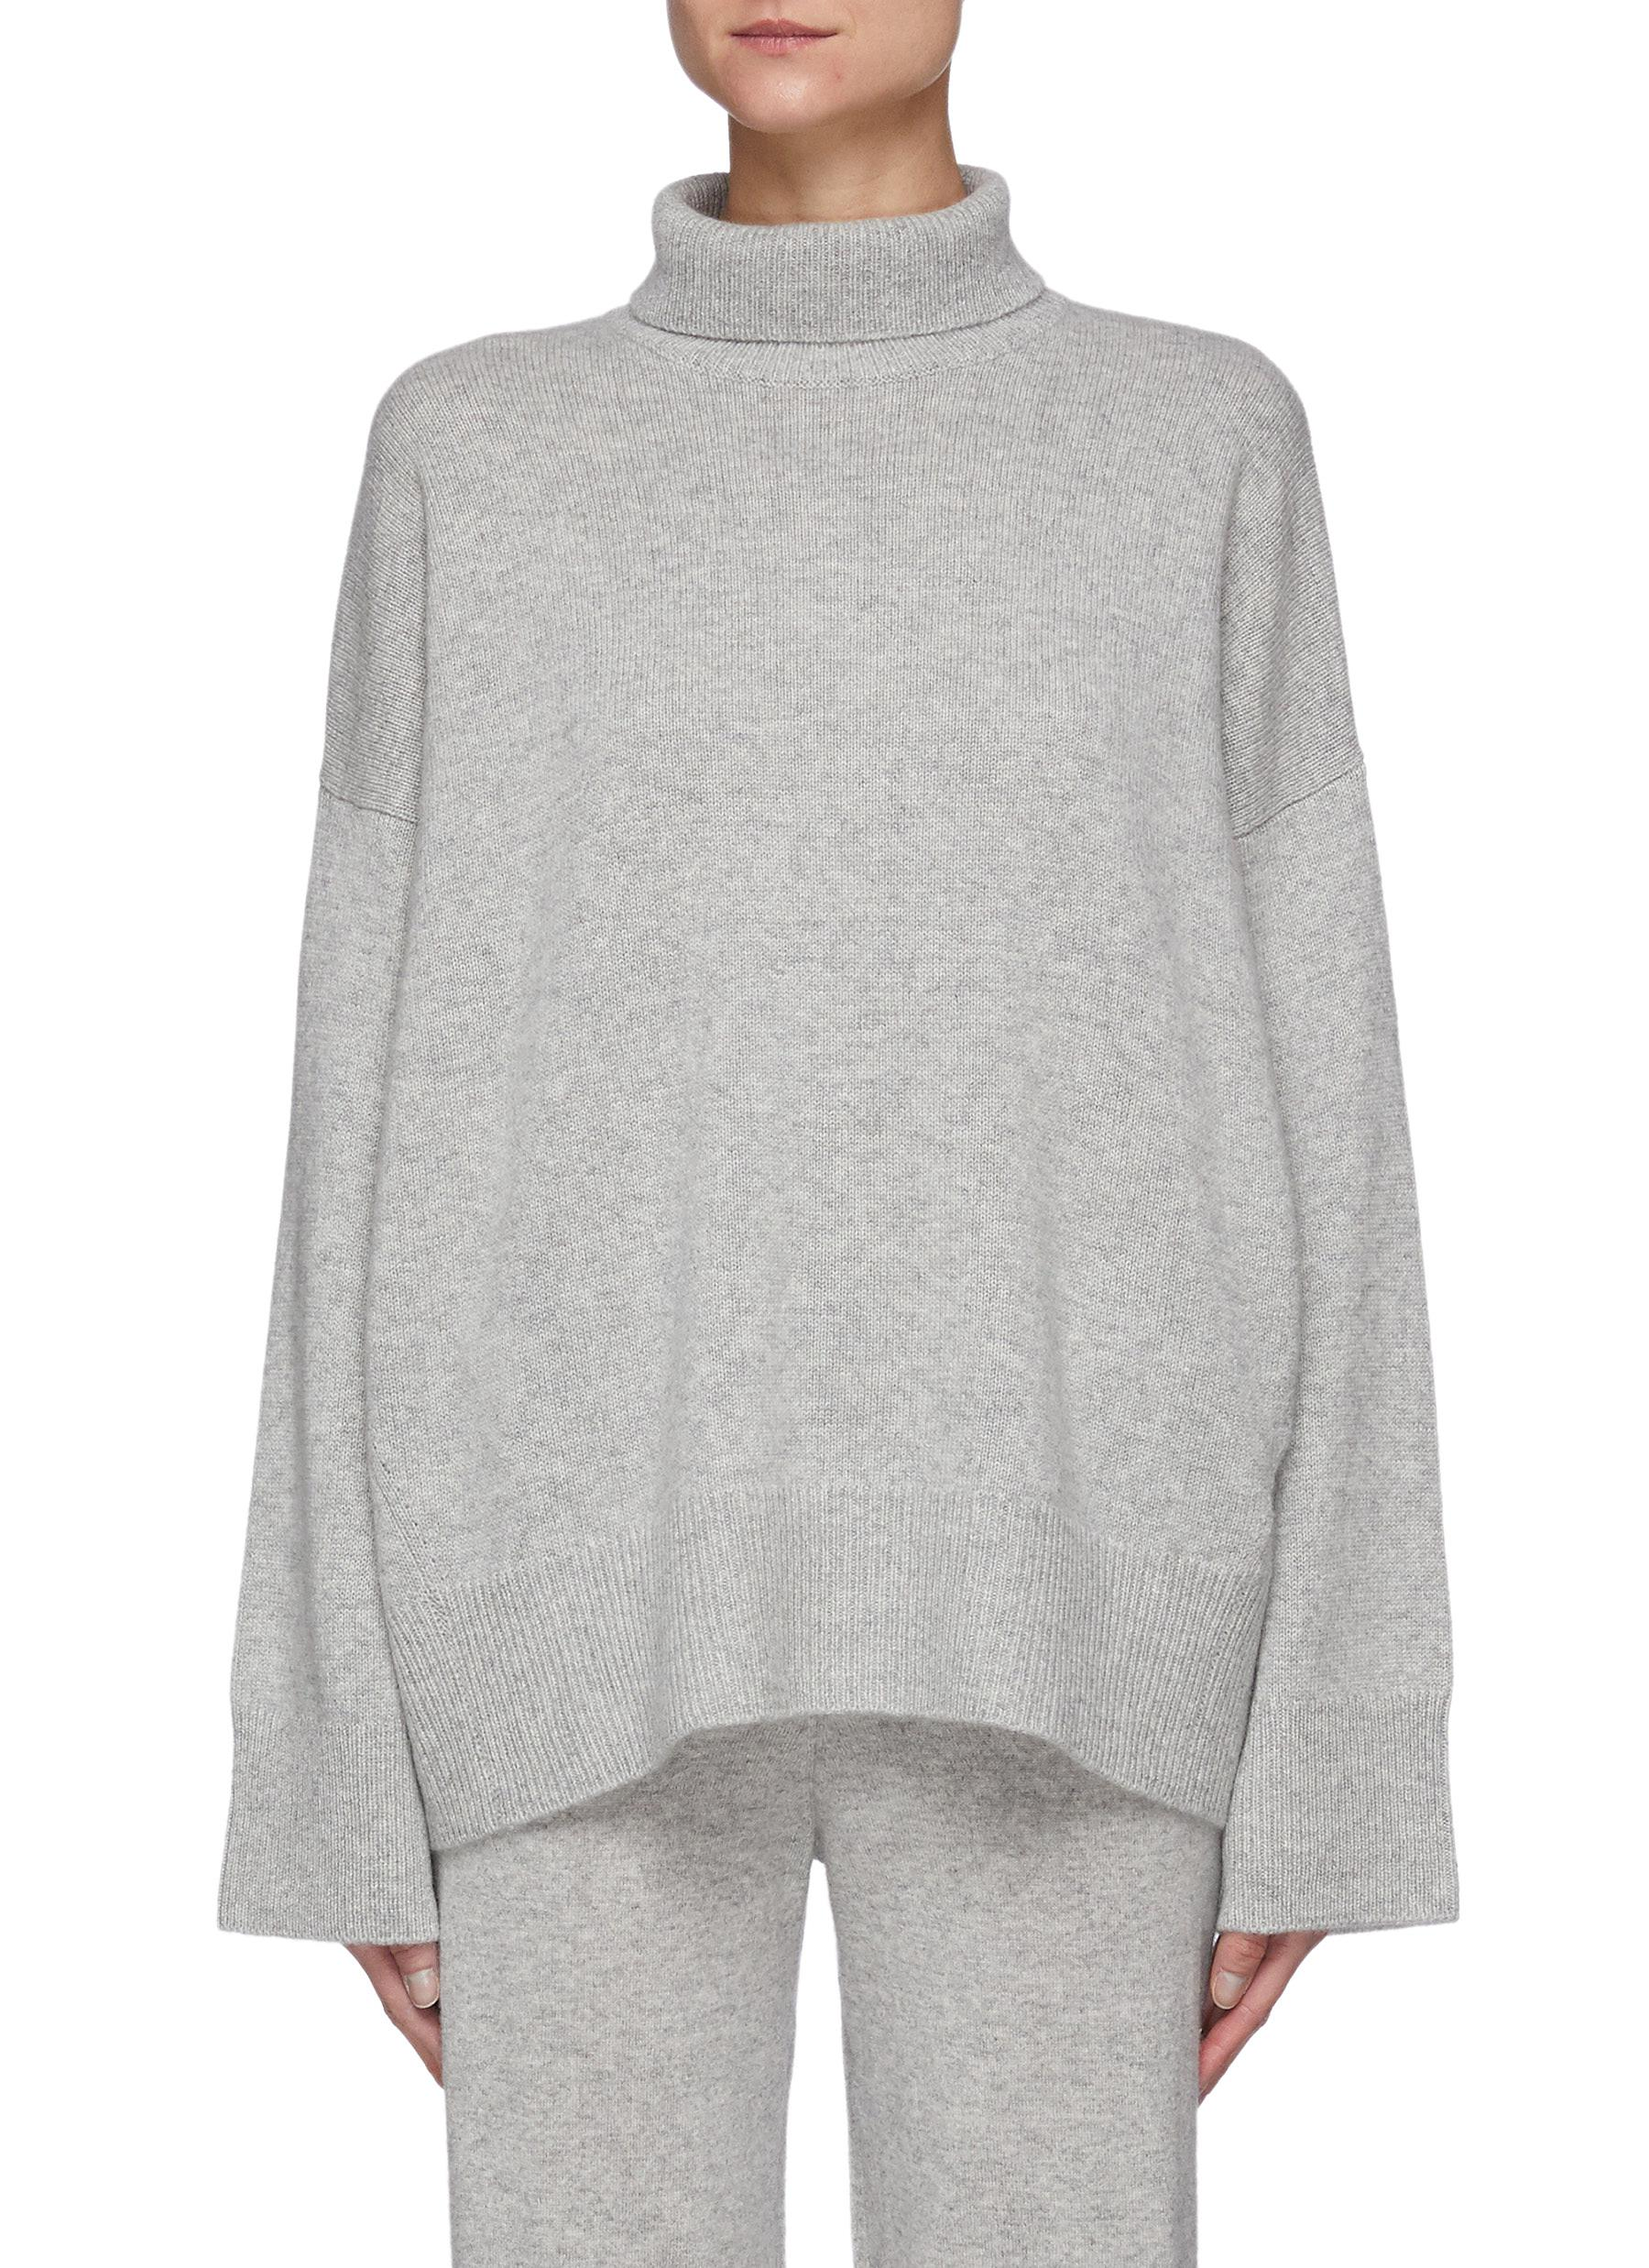 Suedes' Mid Neck Oversized Organic Cashmere Sweater